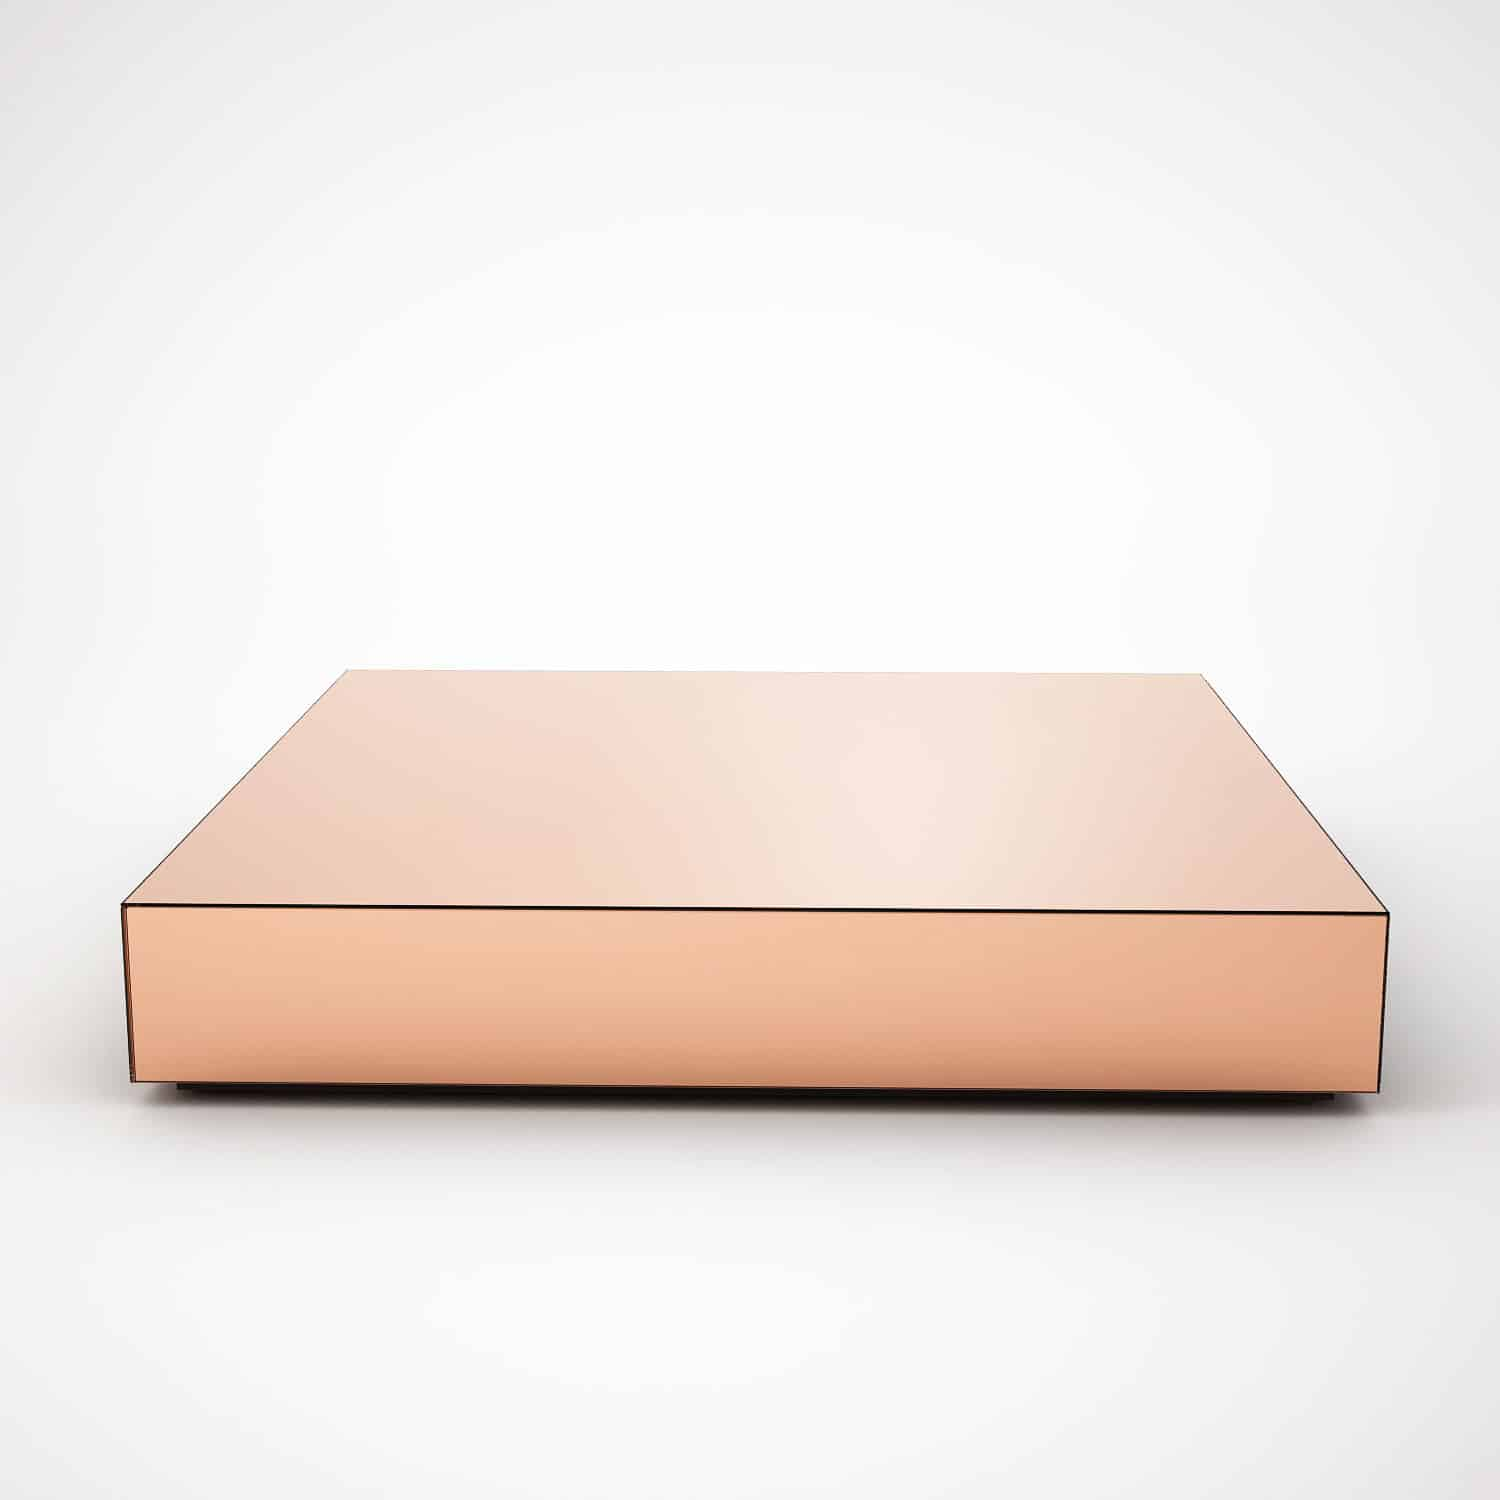 Copper Mirrored Coffee Table By Mirrorbox Klarity Glass Furniture